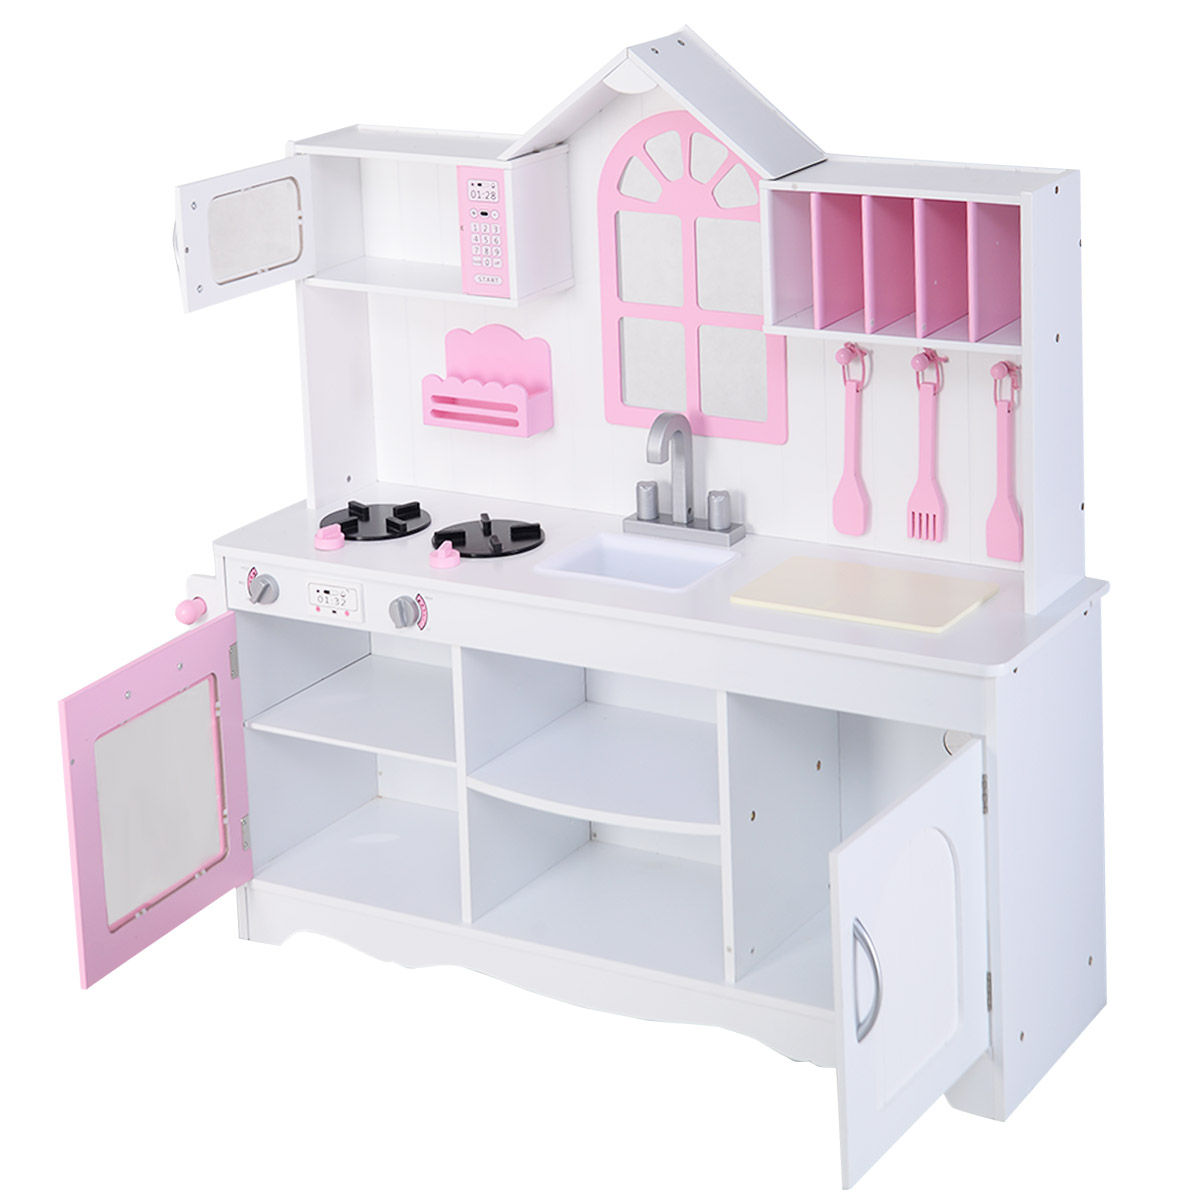 costway kids wood kitchen toy cooking pretend play set toddler  - costway kids wood kitchen toy cooking pretend play set toddler woodenplayset  walmartcom